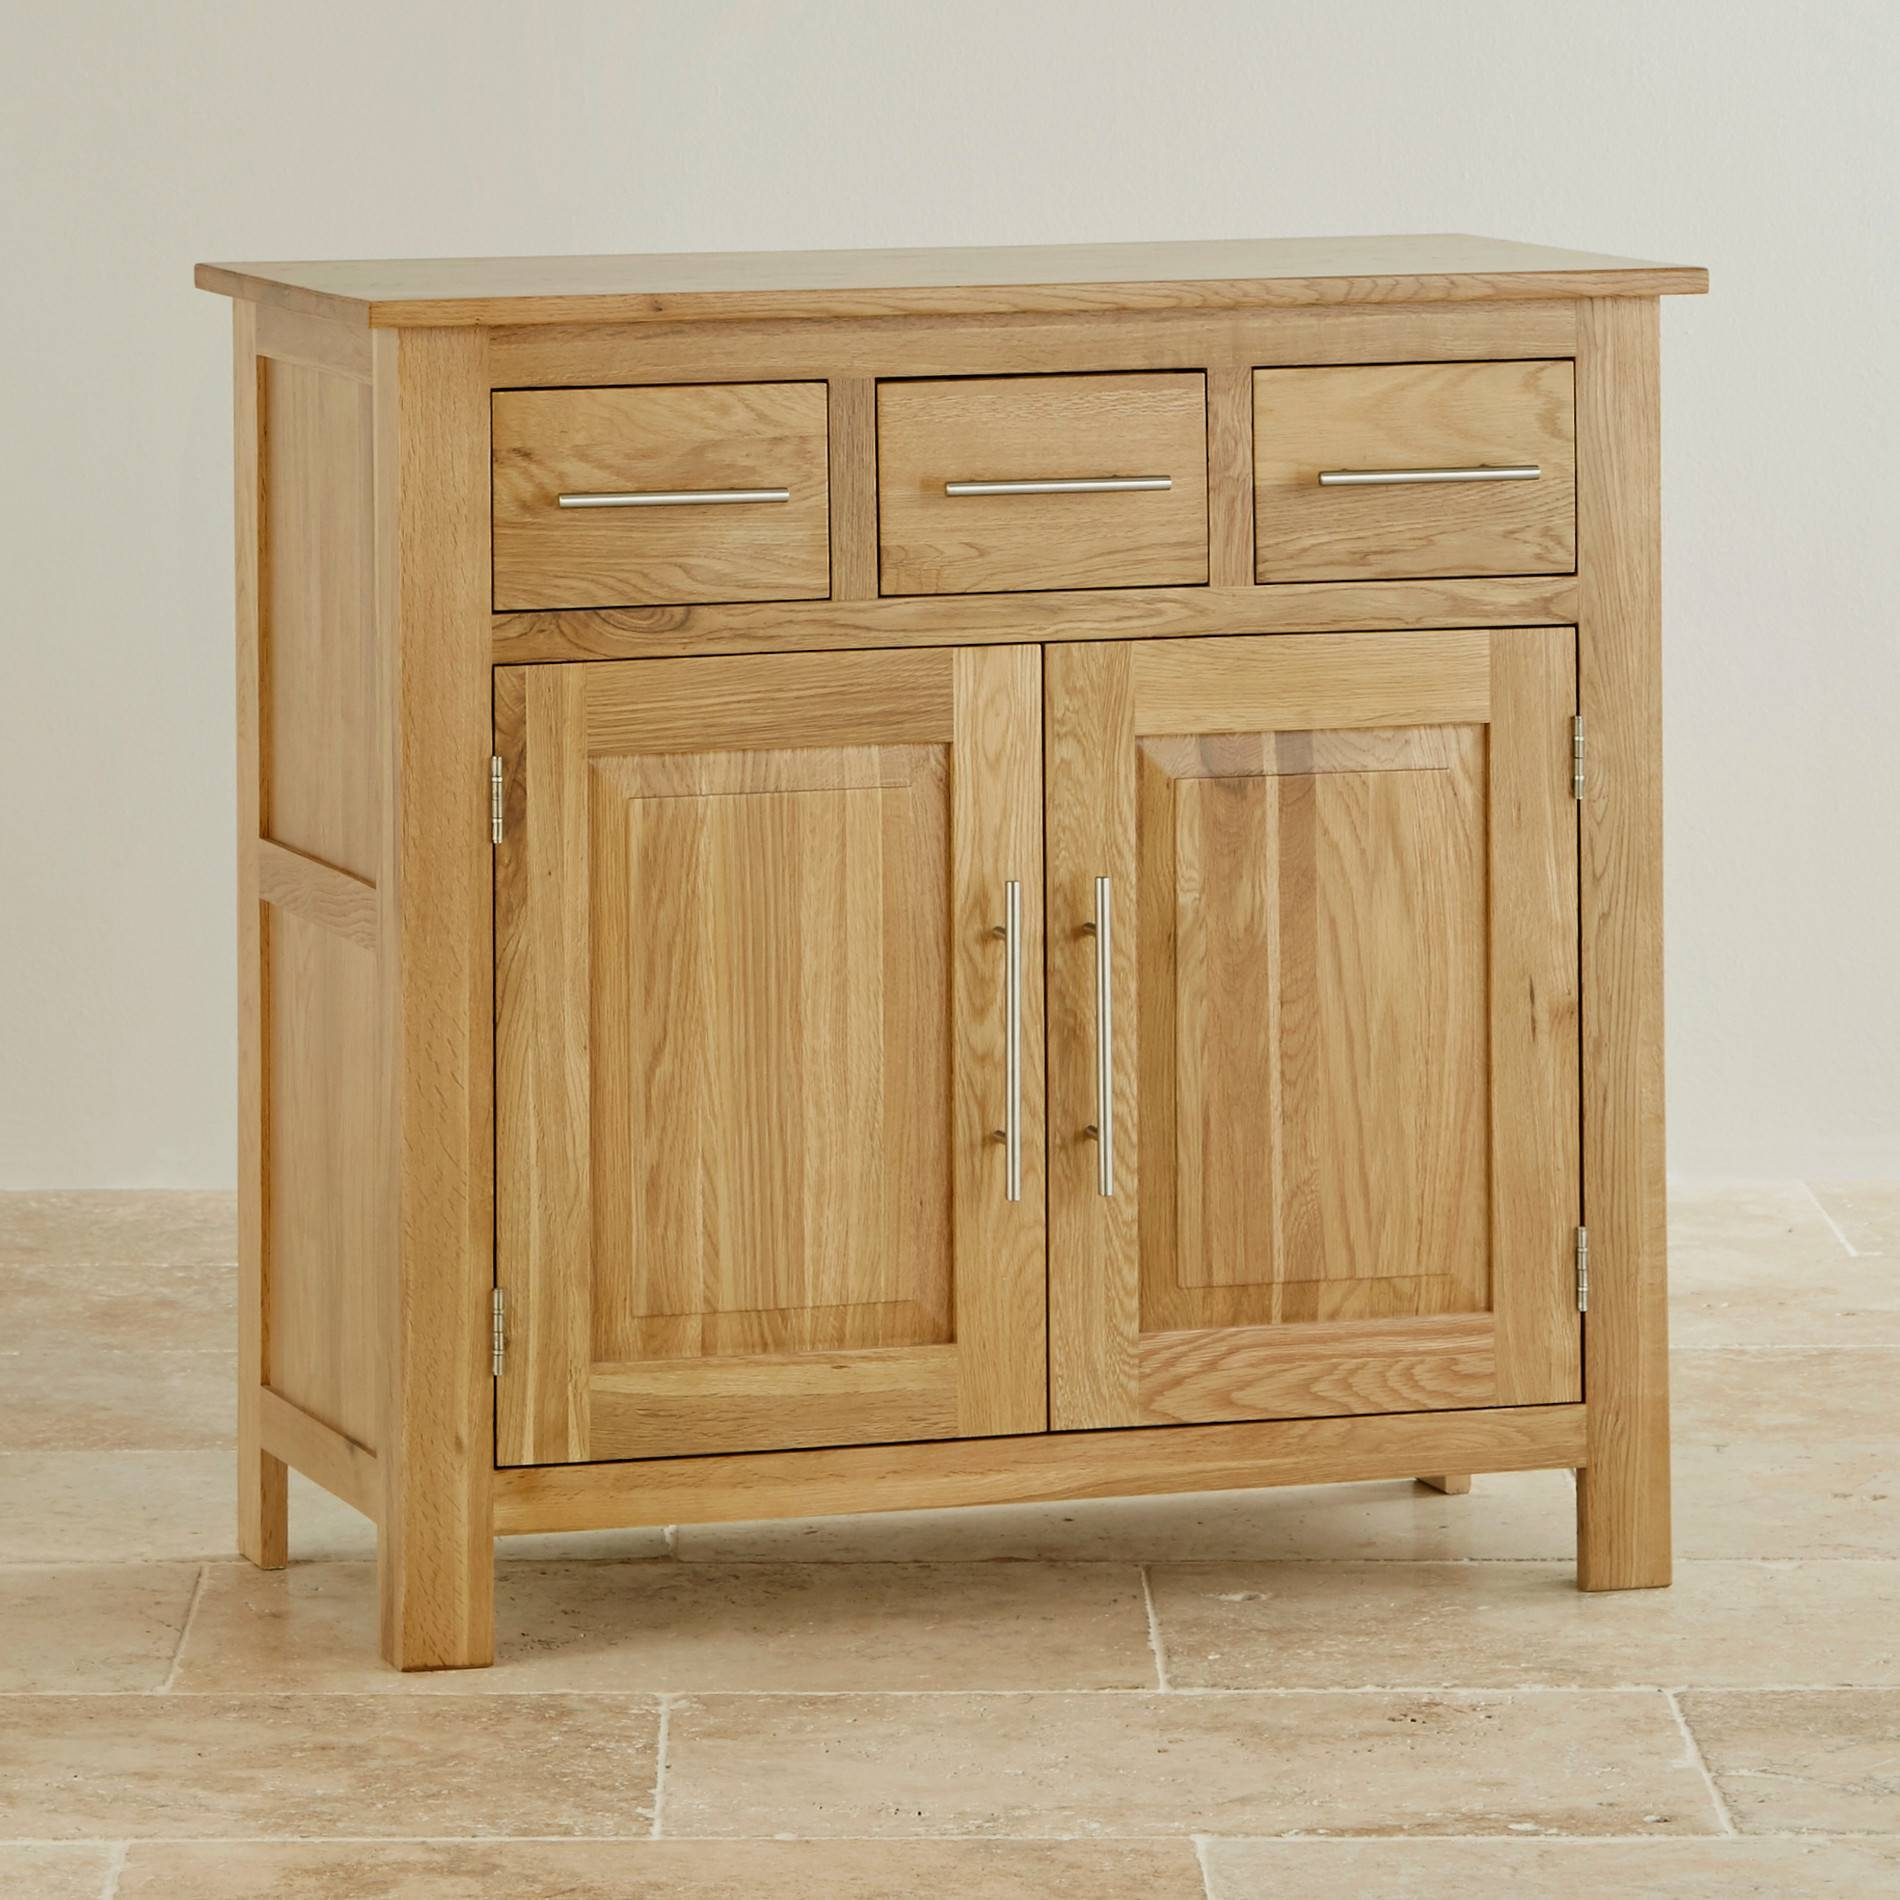 Rivermead Natural Solid Oak Small Sideboard | Oak Furniture Land With Regard To Small Sideboard With Drawers (View 12 of 20)